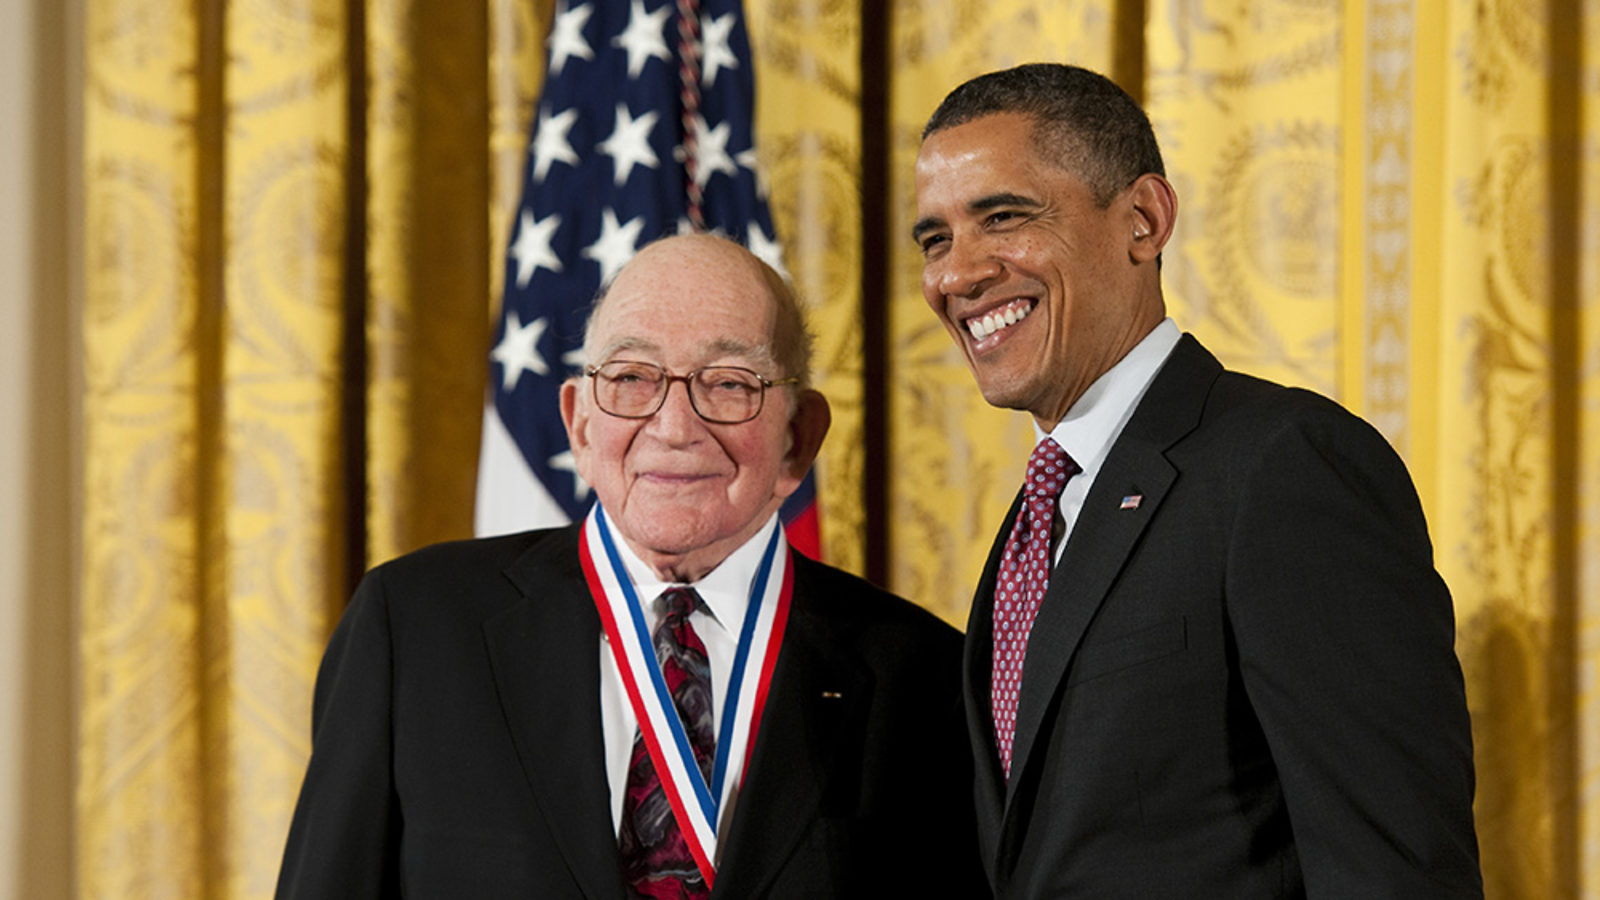 Photo of 2011 National Medal Drell: Sidney Drell receives the National Medal of Science from President Obama